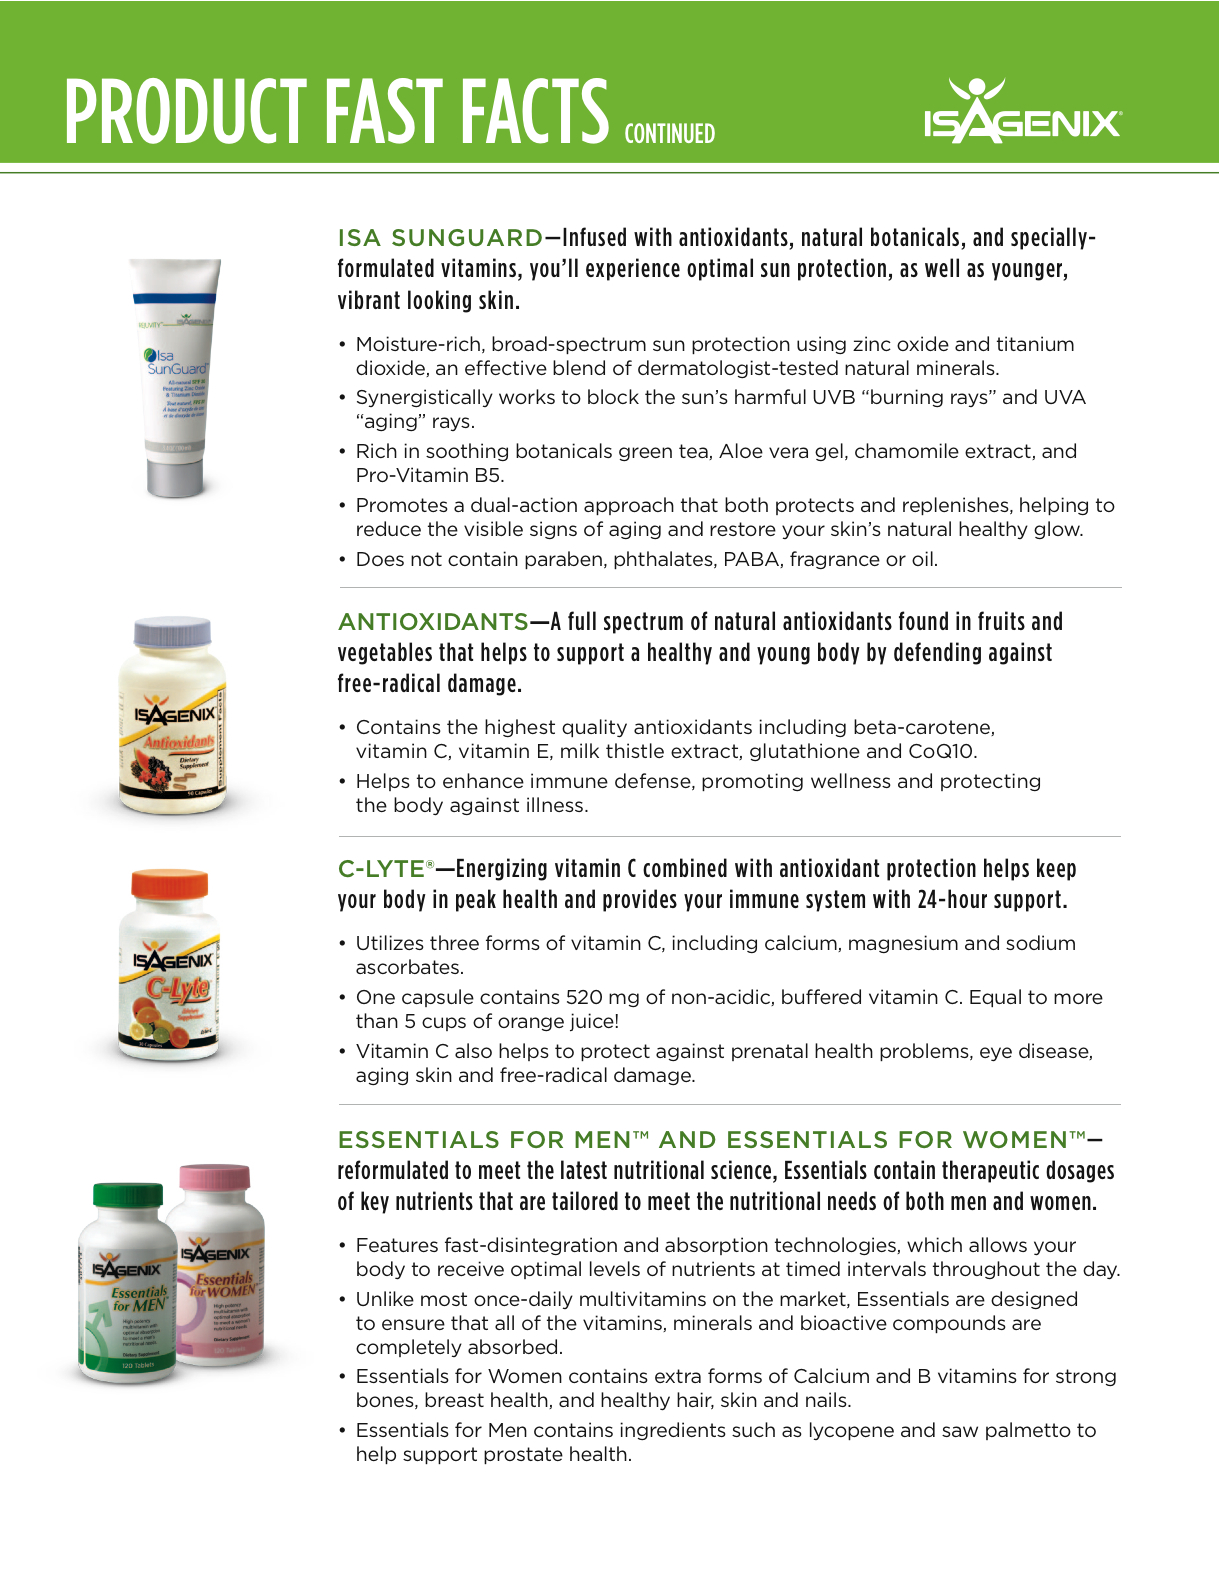 how to order isagenix cleanse